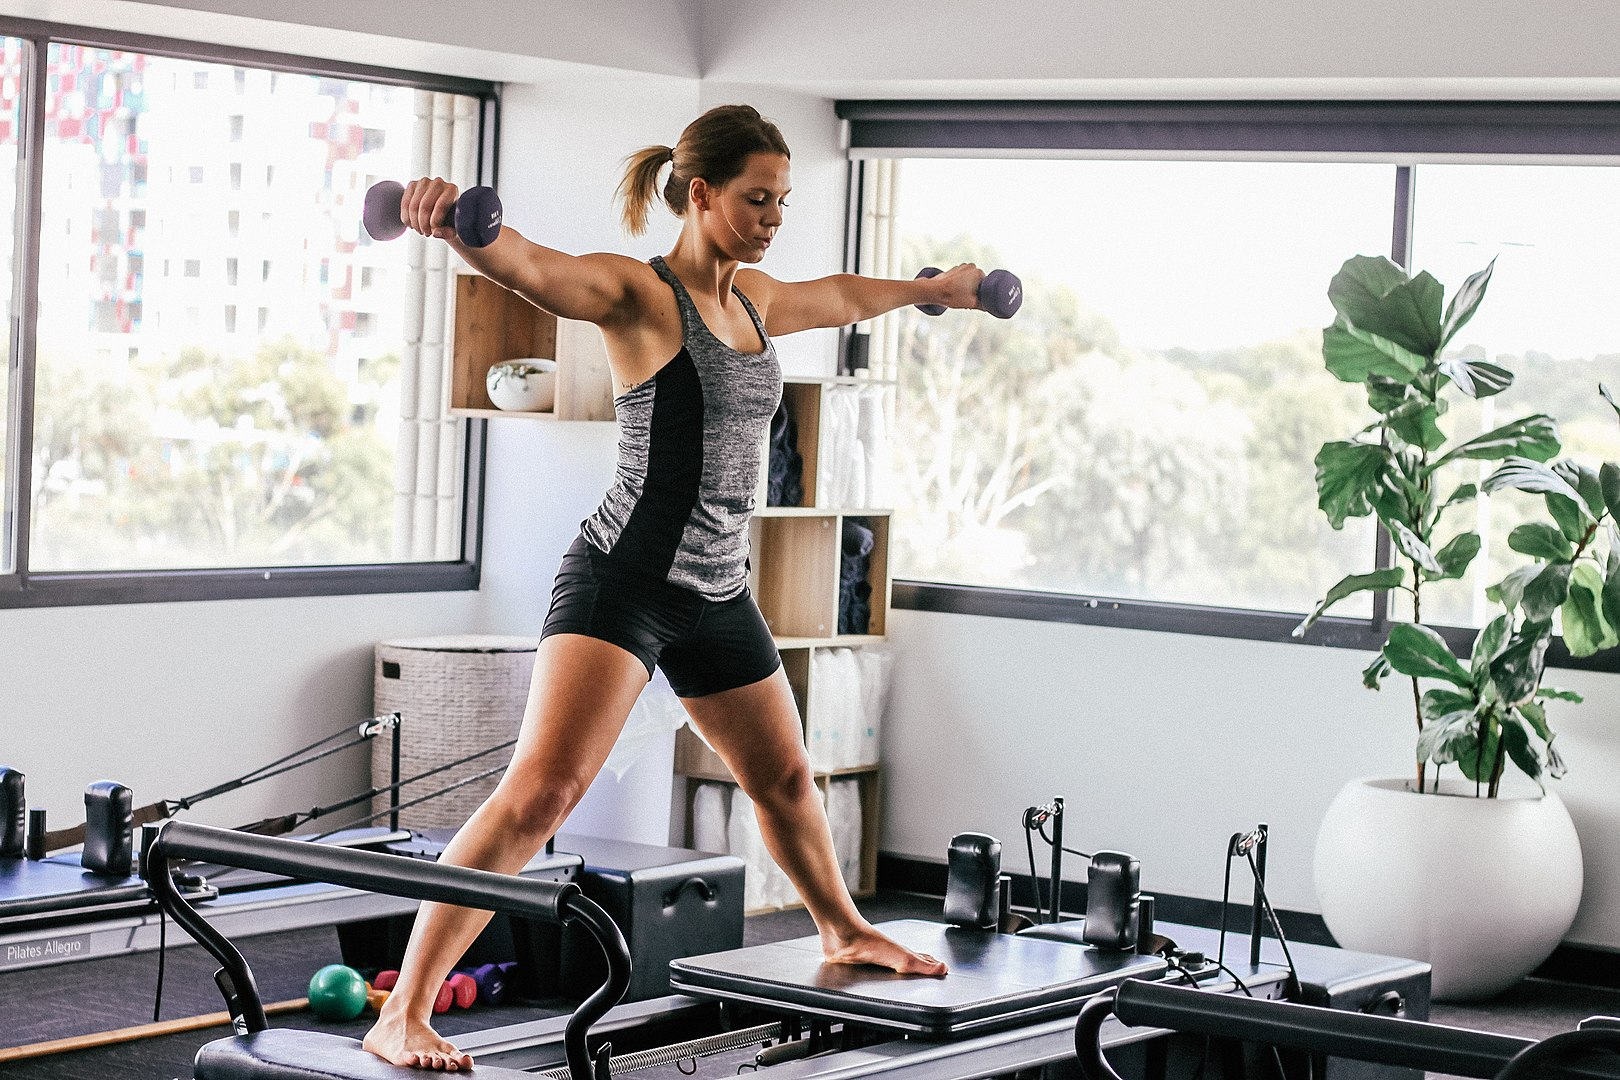 Pilates, Practicing on a Reformer